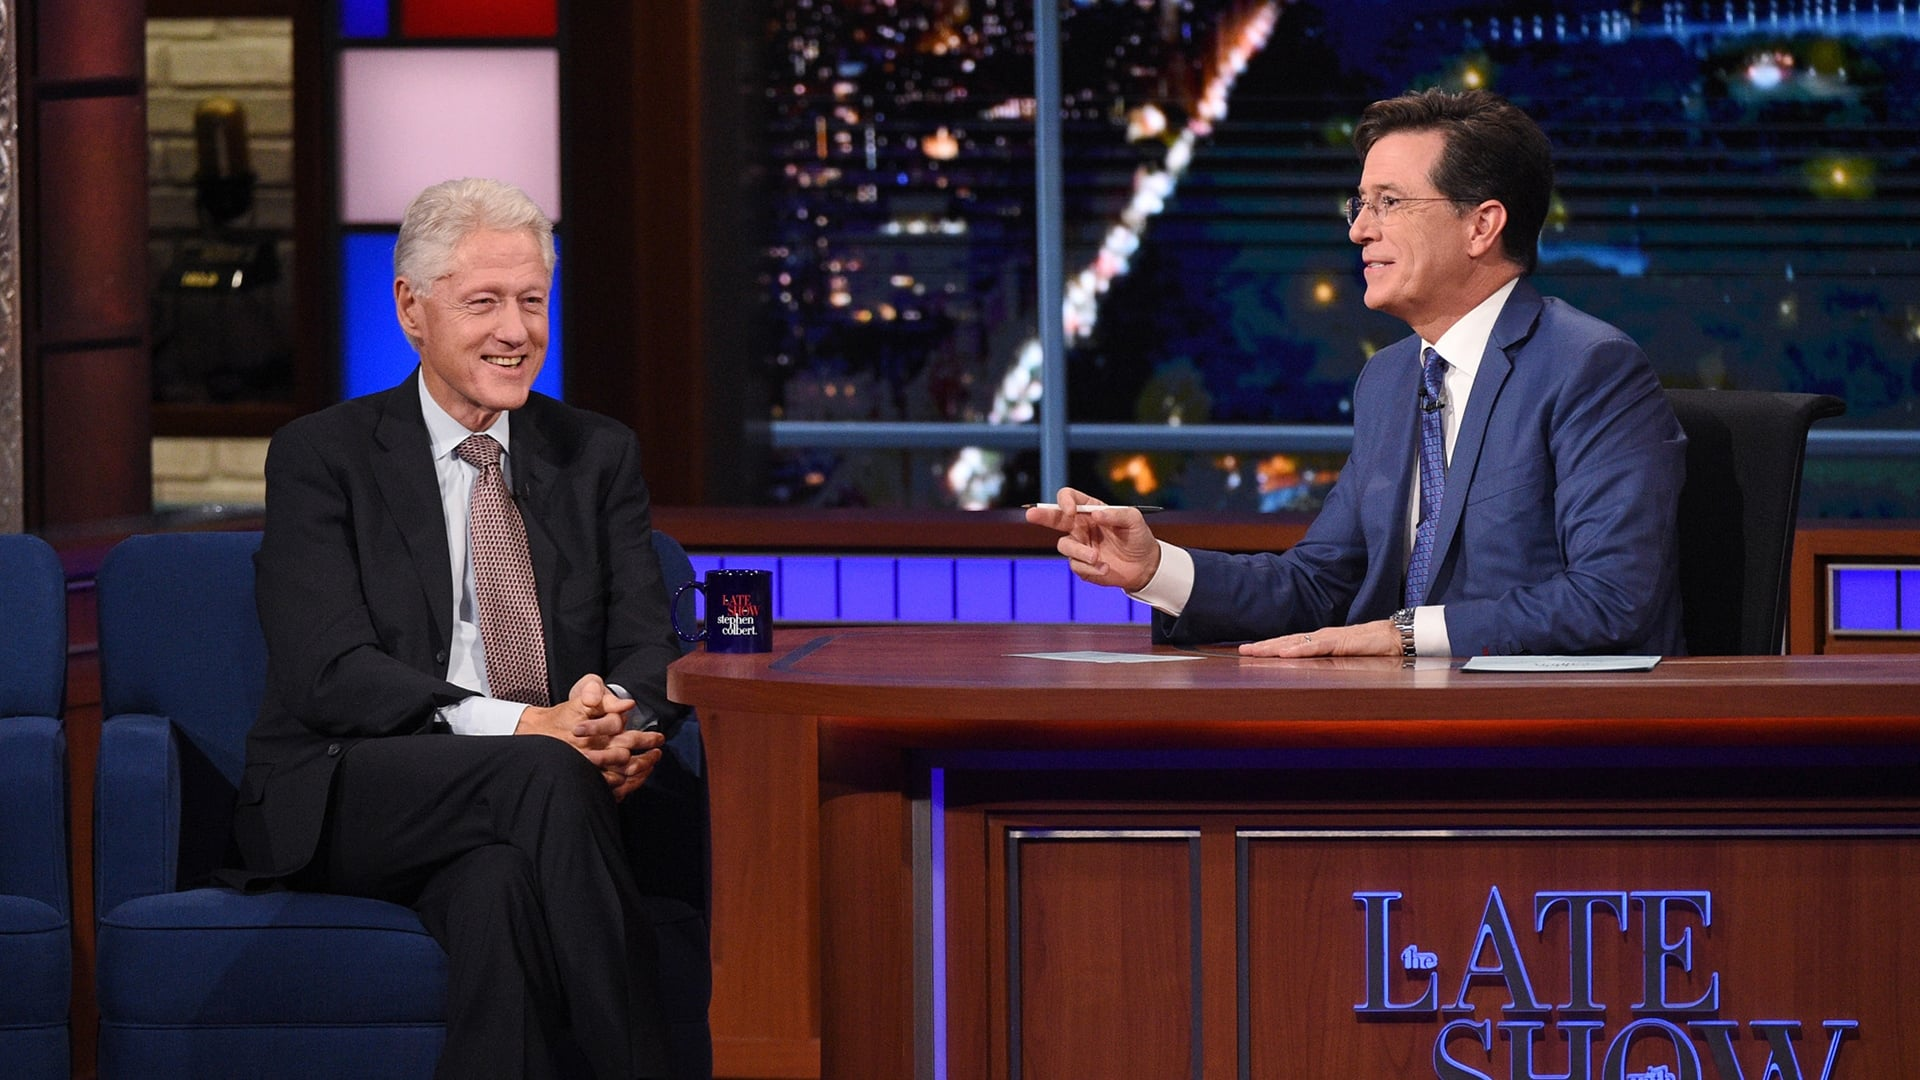 The Late Show with Stephen Colbert Season 1 :Episode 21  Bill Clinton, Billy Eichner, Florence & the Machine